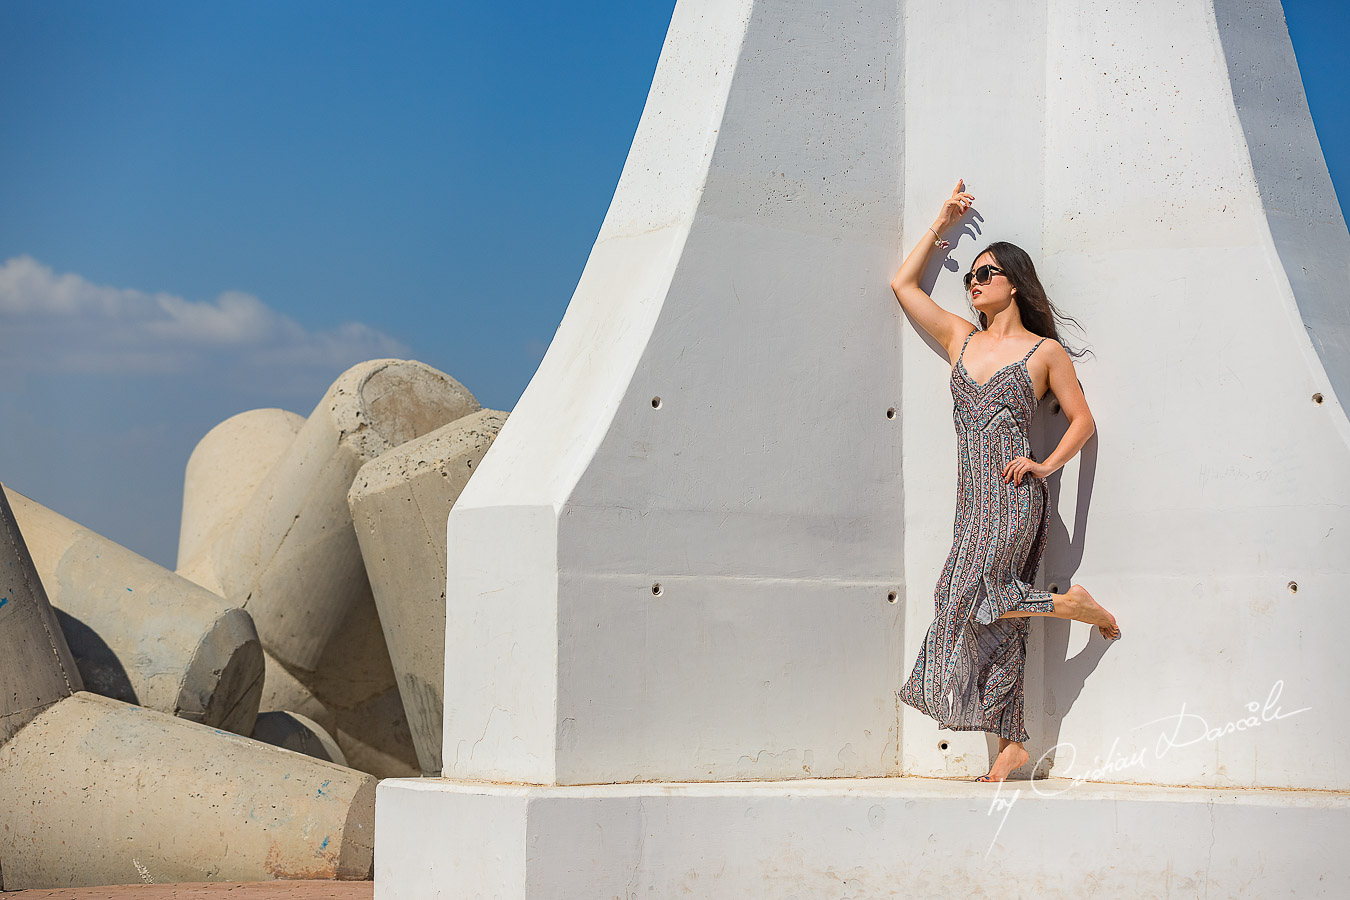 Hongzhen posing like a model in Zygi, Cyprus. Photographer: Cristian Dascalu